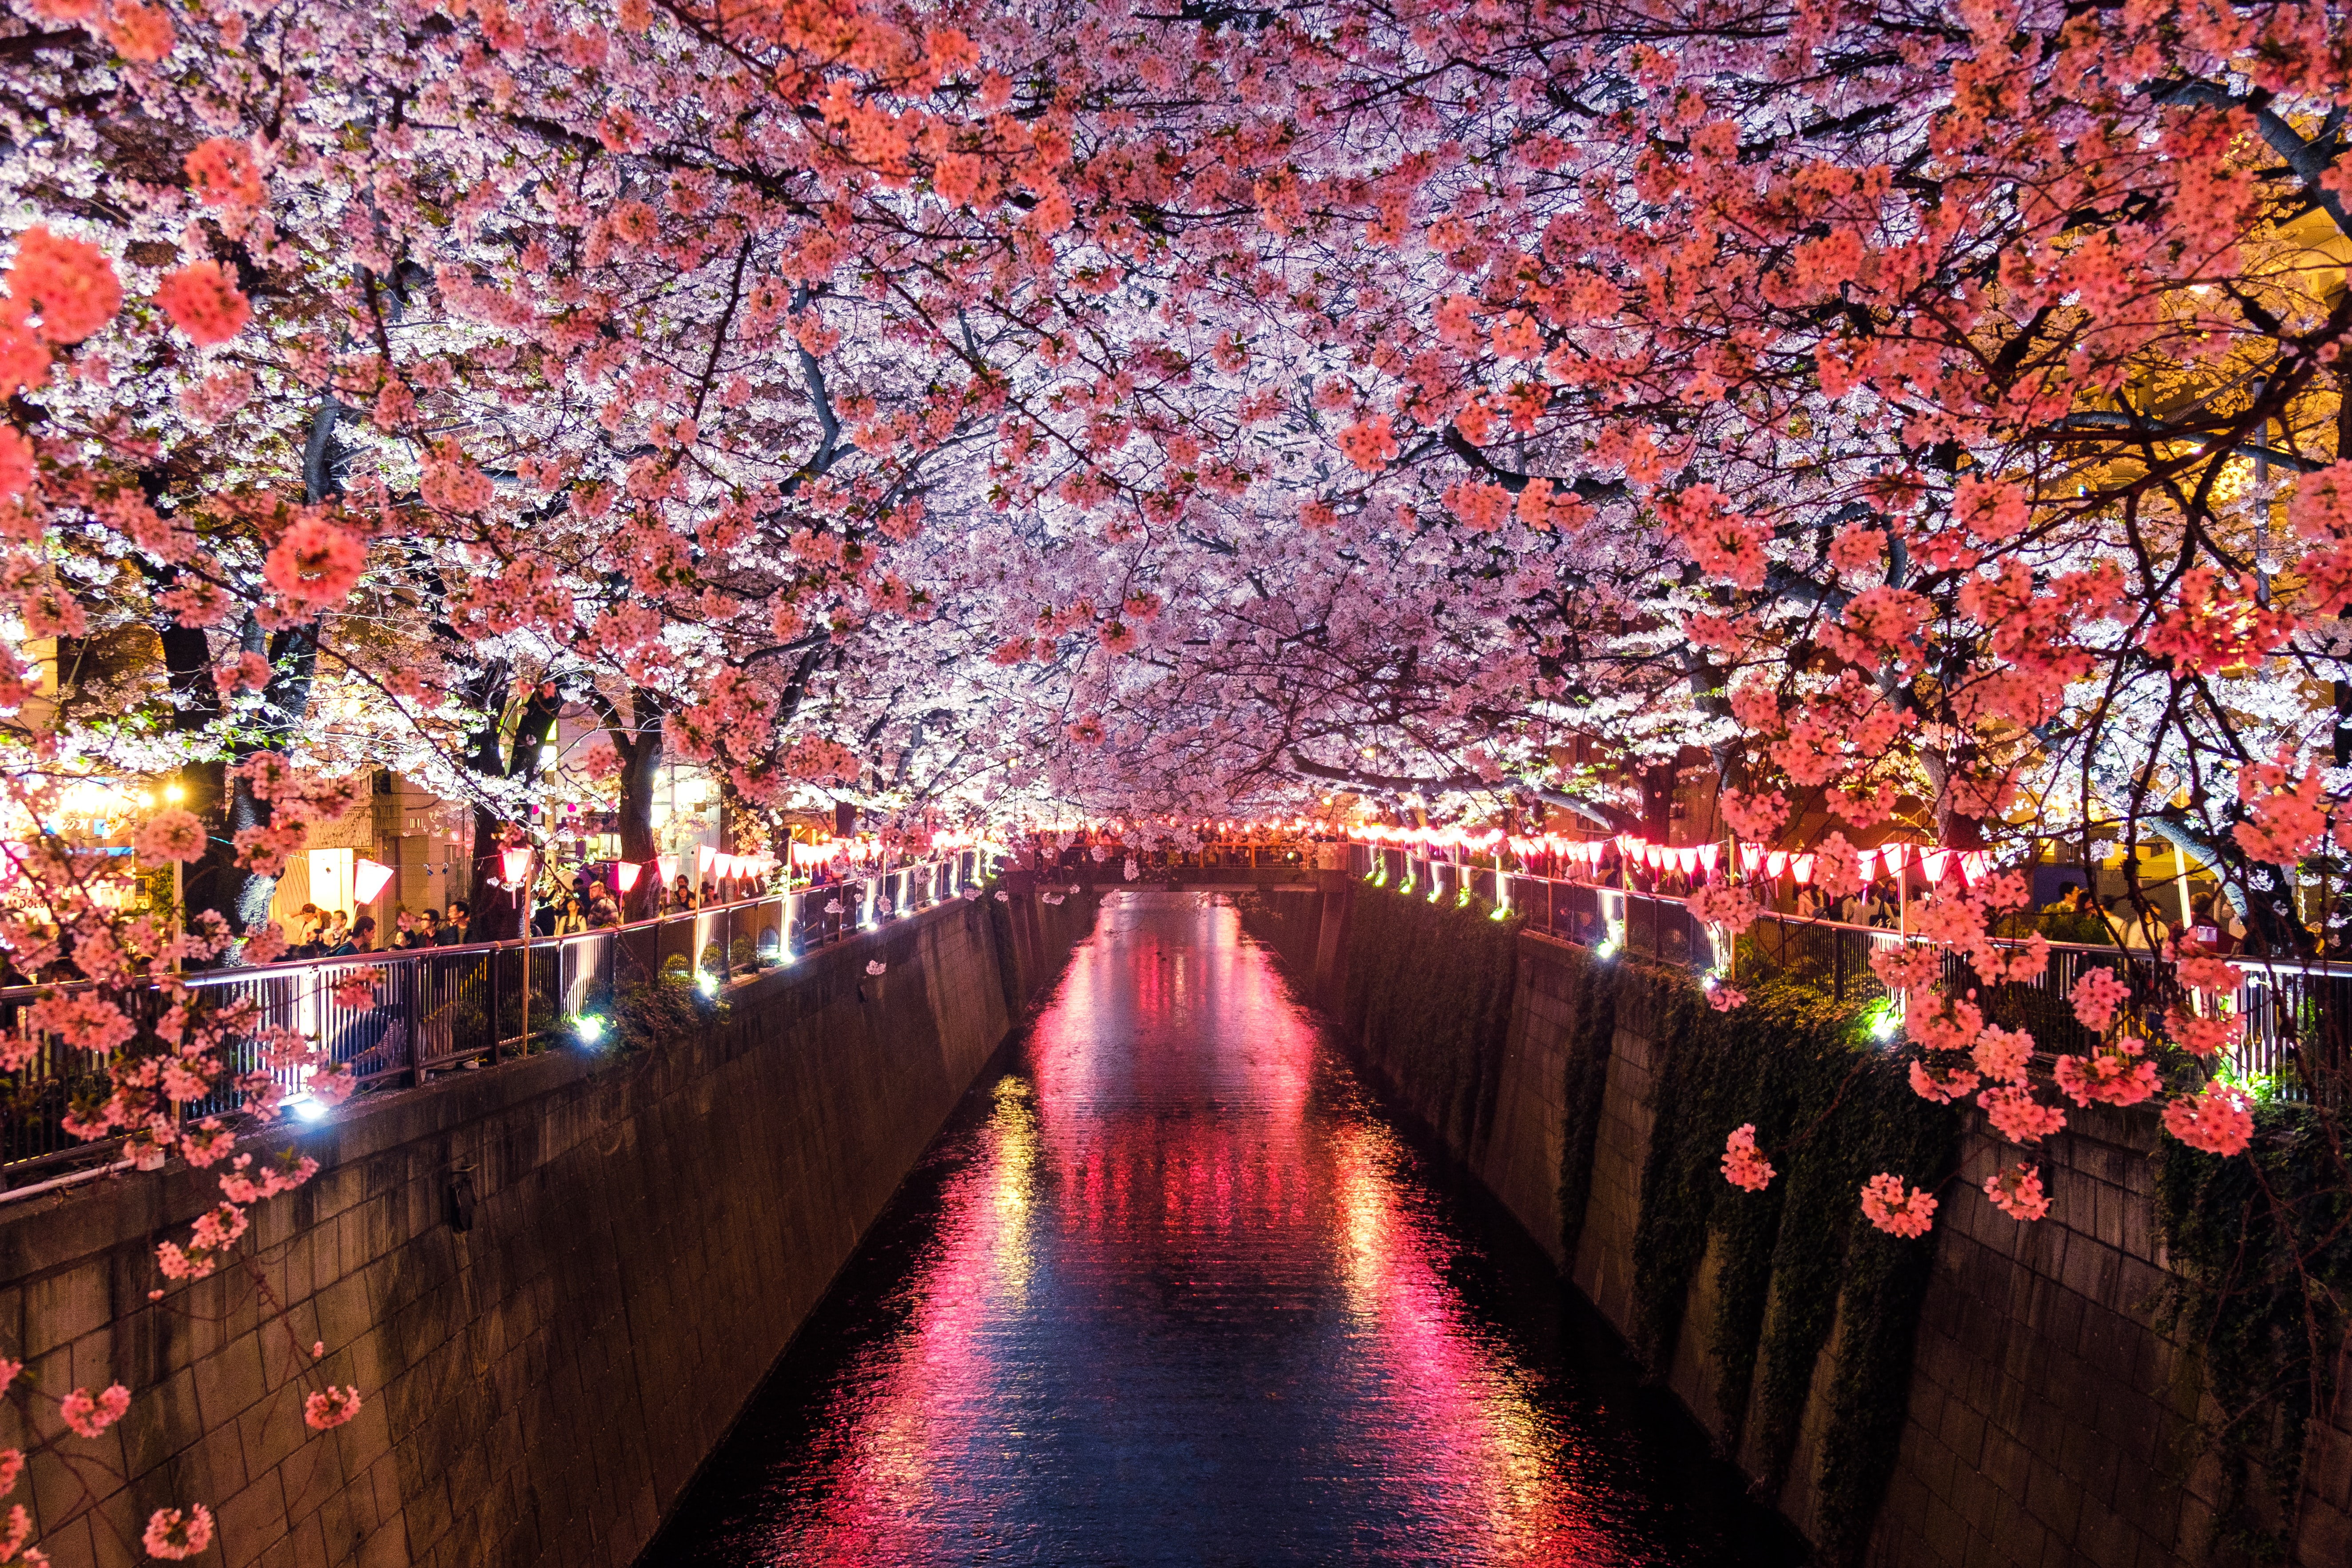 The cherry blossoms in full bloom during a Japanese spring. This is in Naka Meguro, Tokyo.